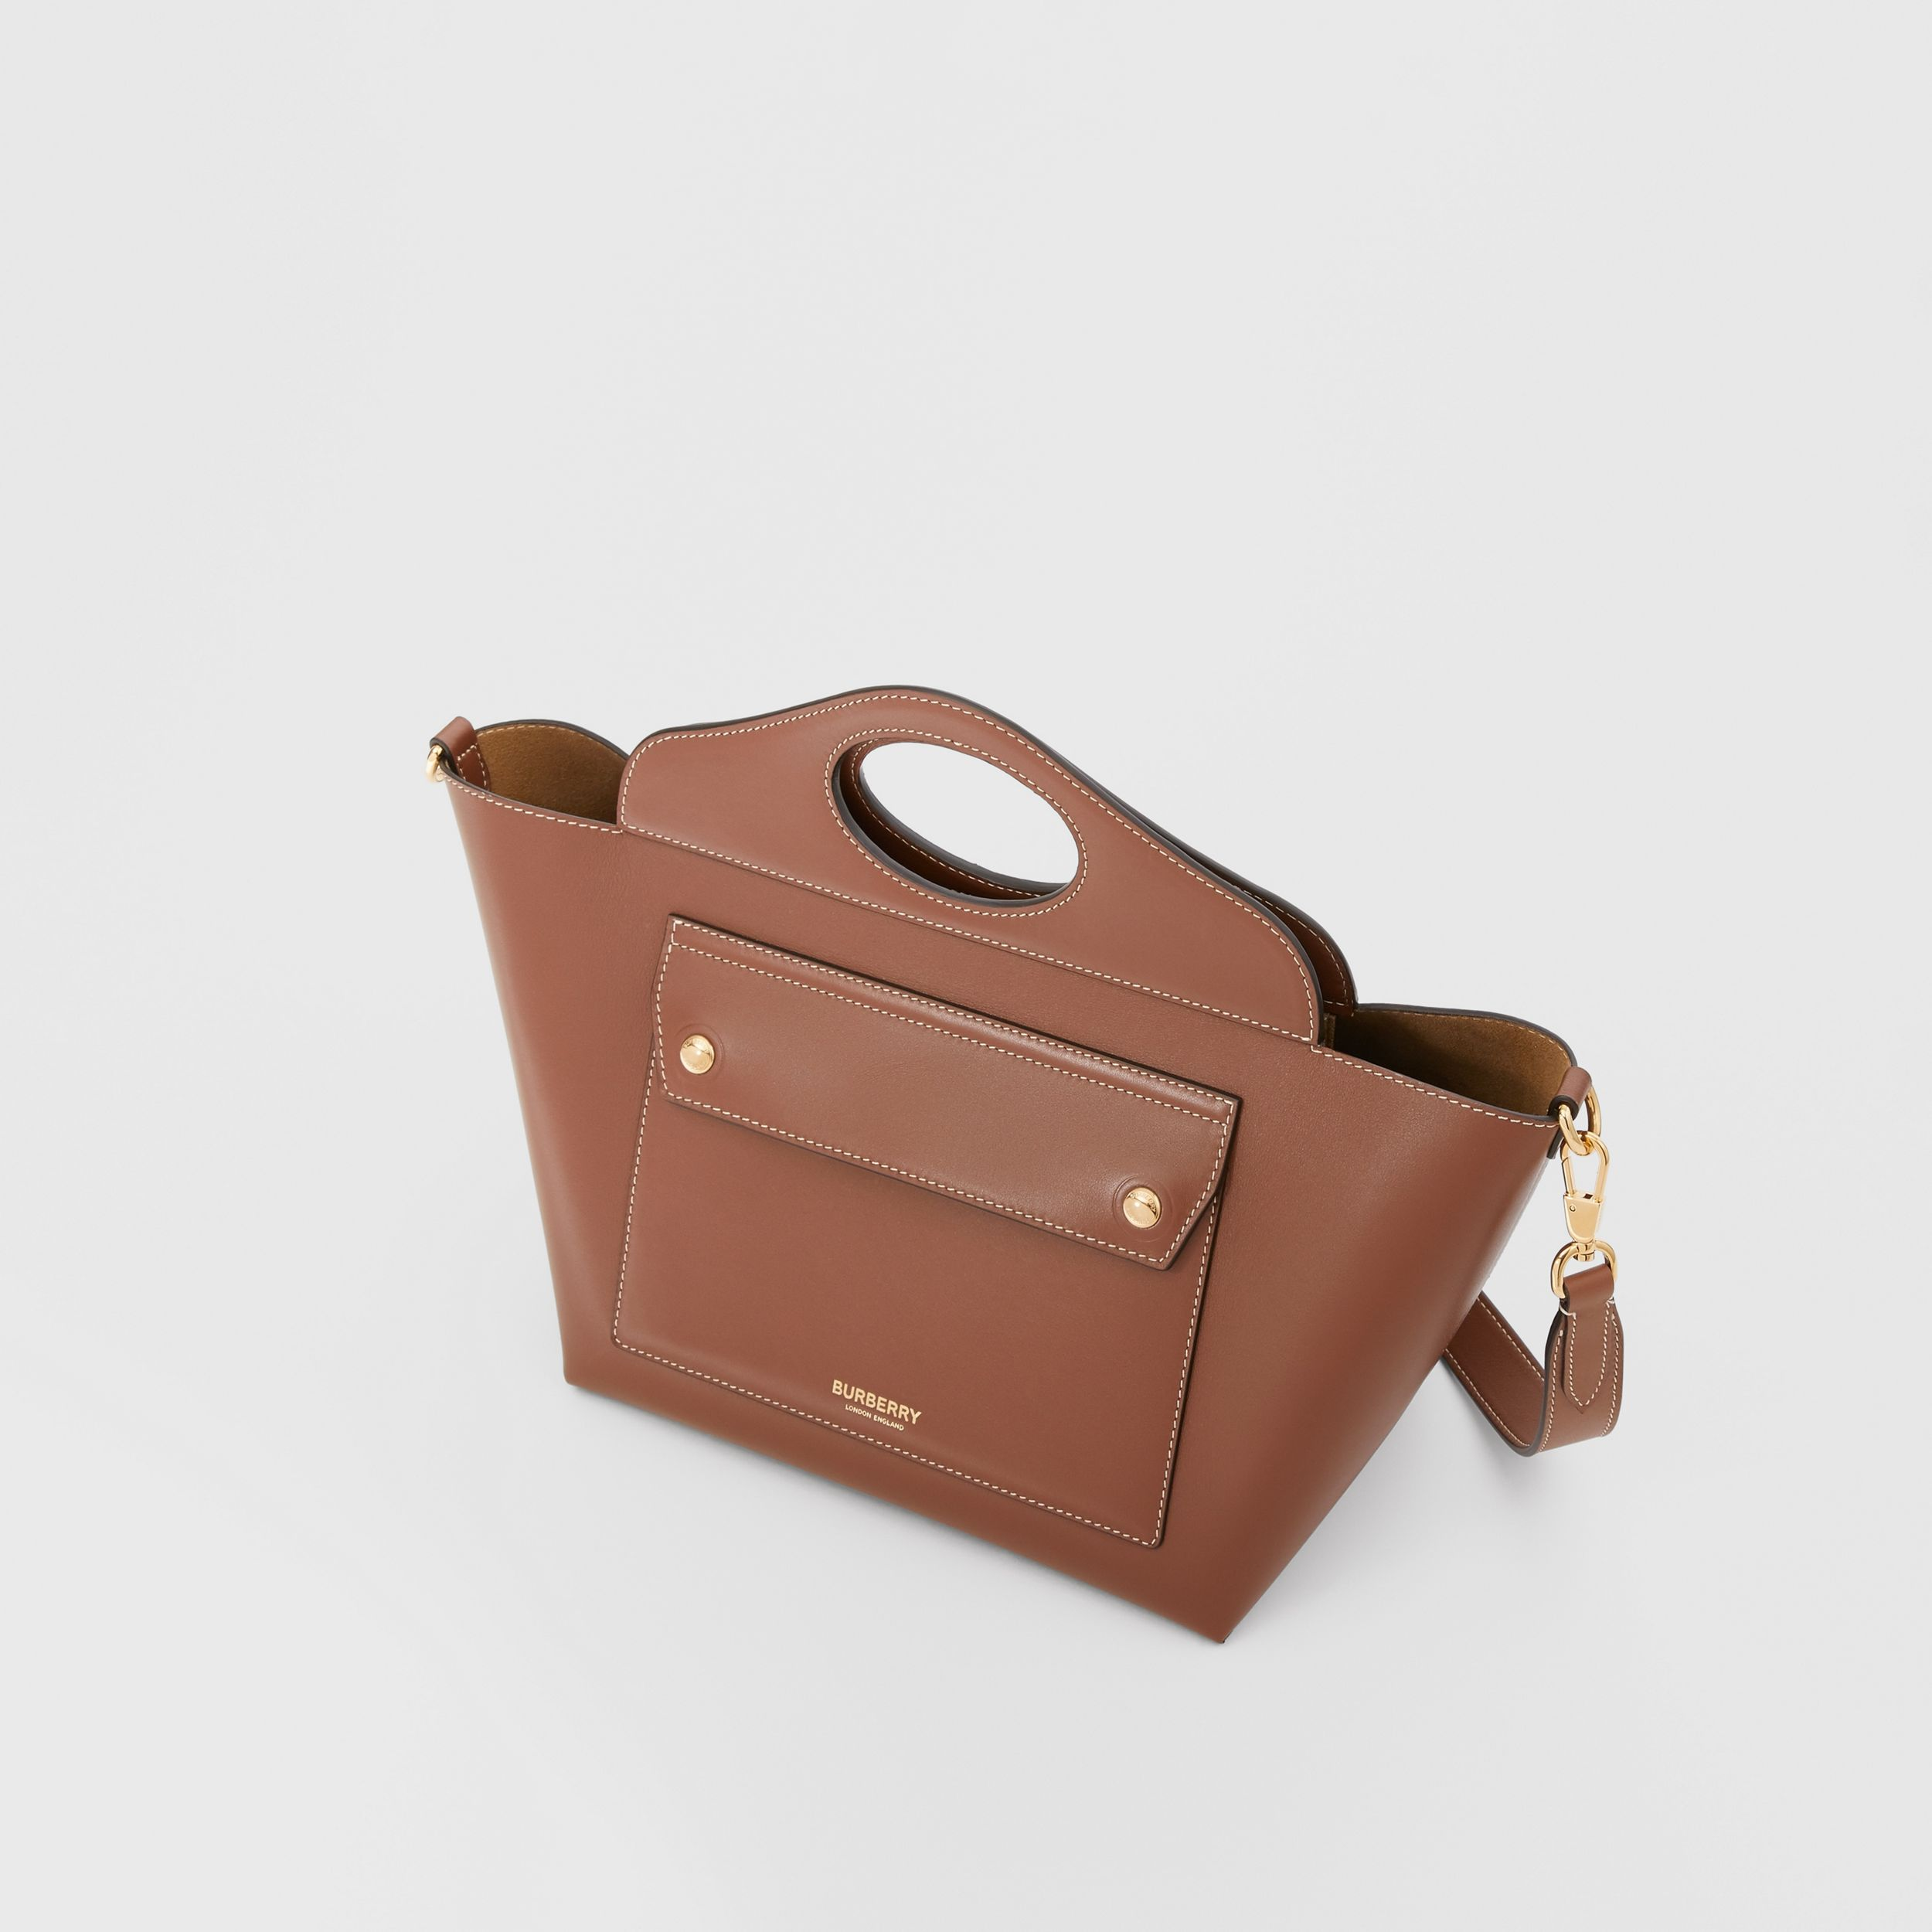 Mini Leather Soft Pocket Tote in Tan - Women | Burberry United Kingdom - 3